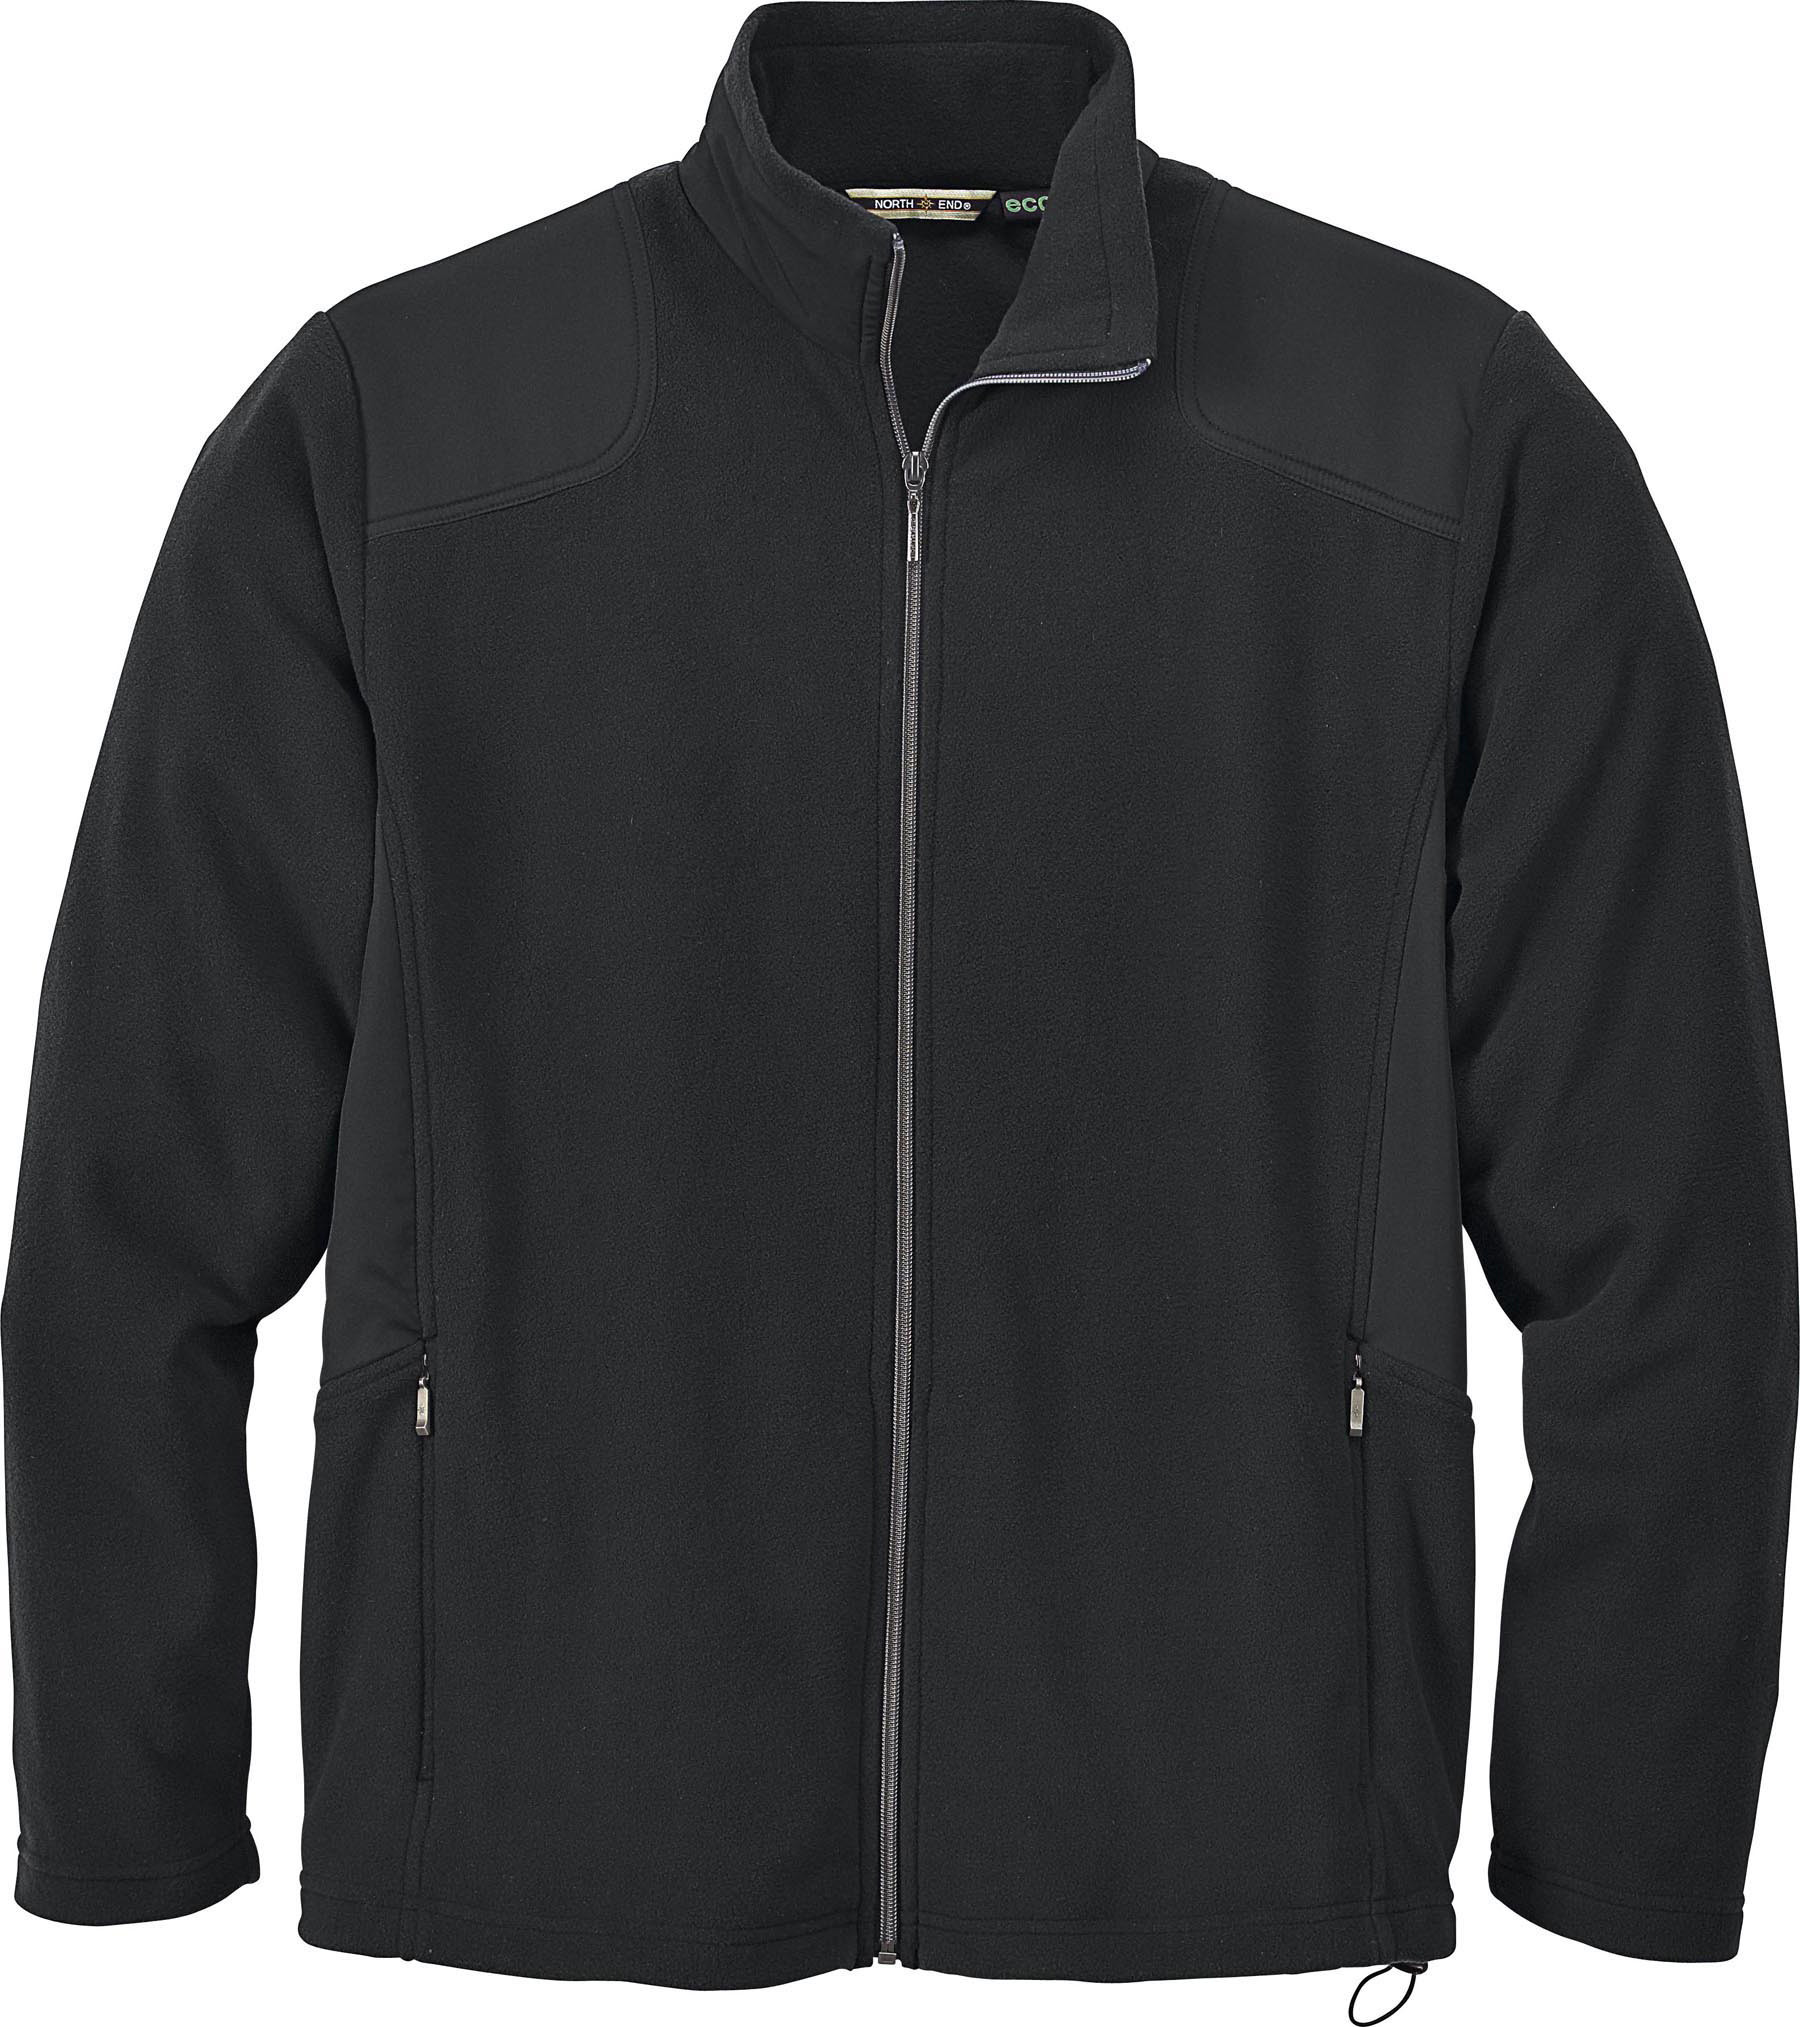 Ash City e.c.o Fleece 88141 - Men's Recycled Polyester ...